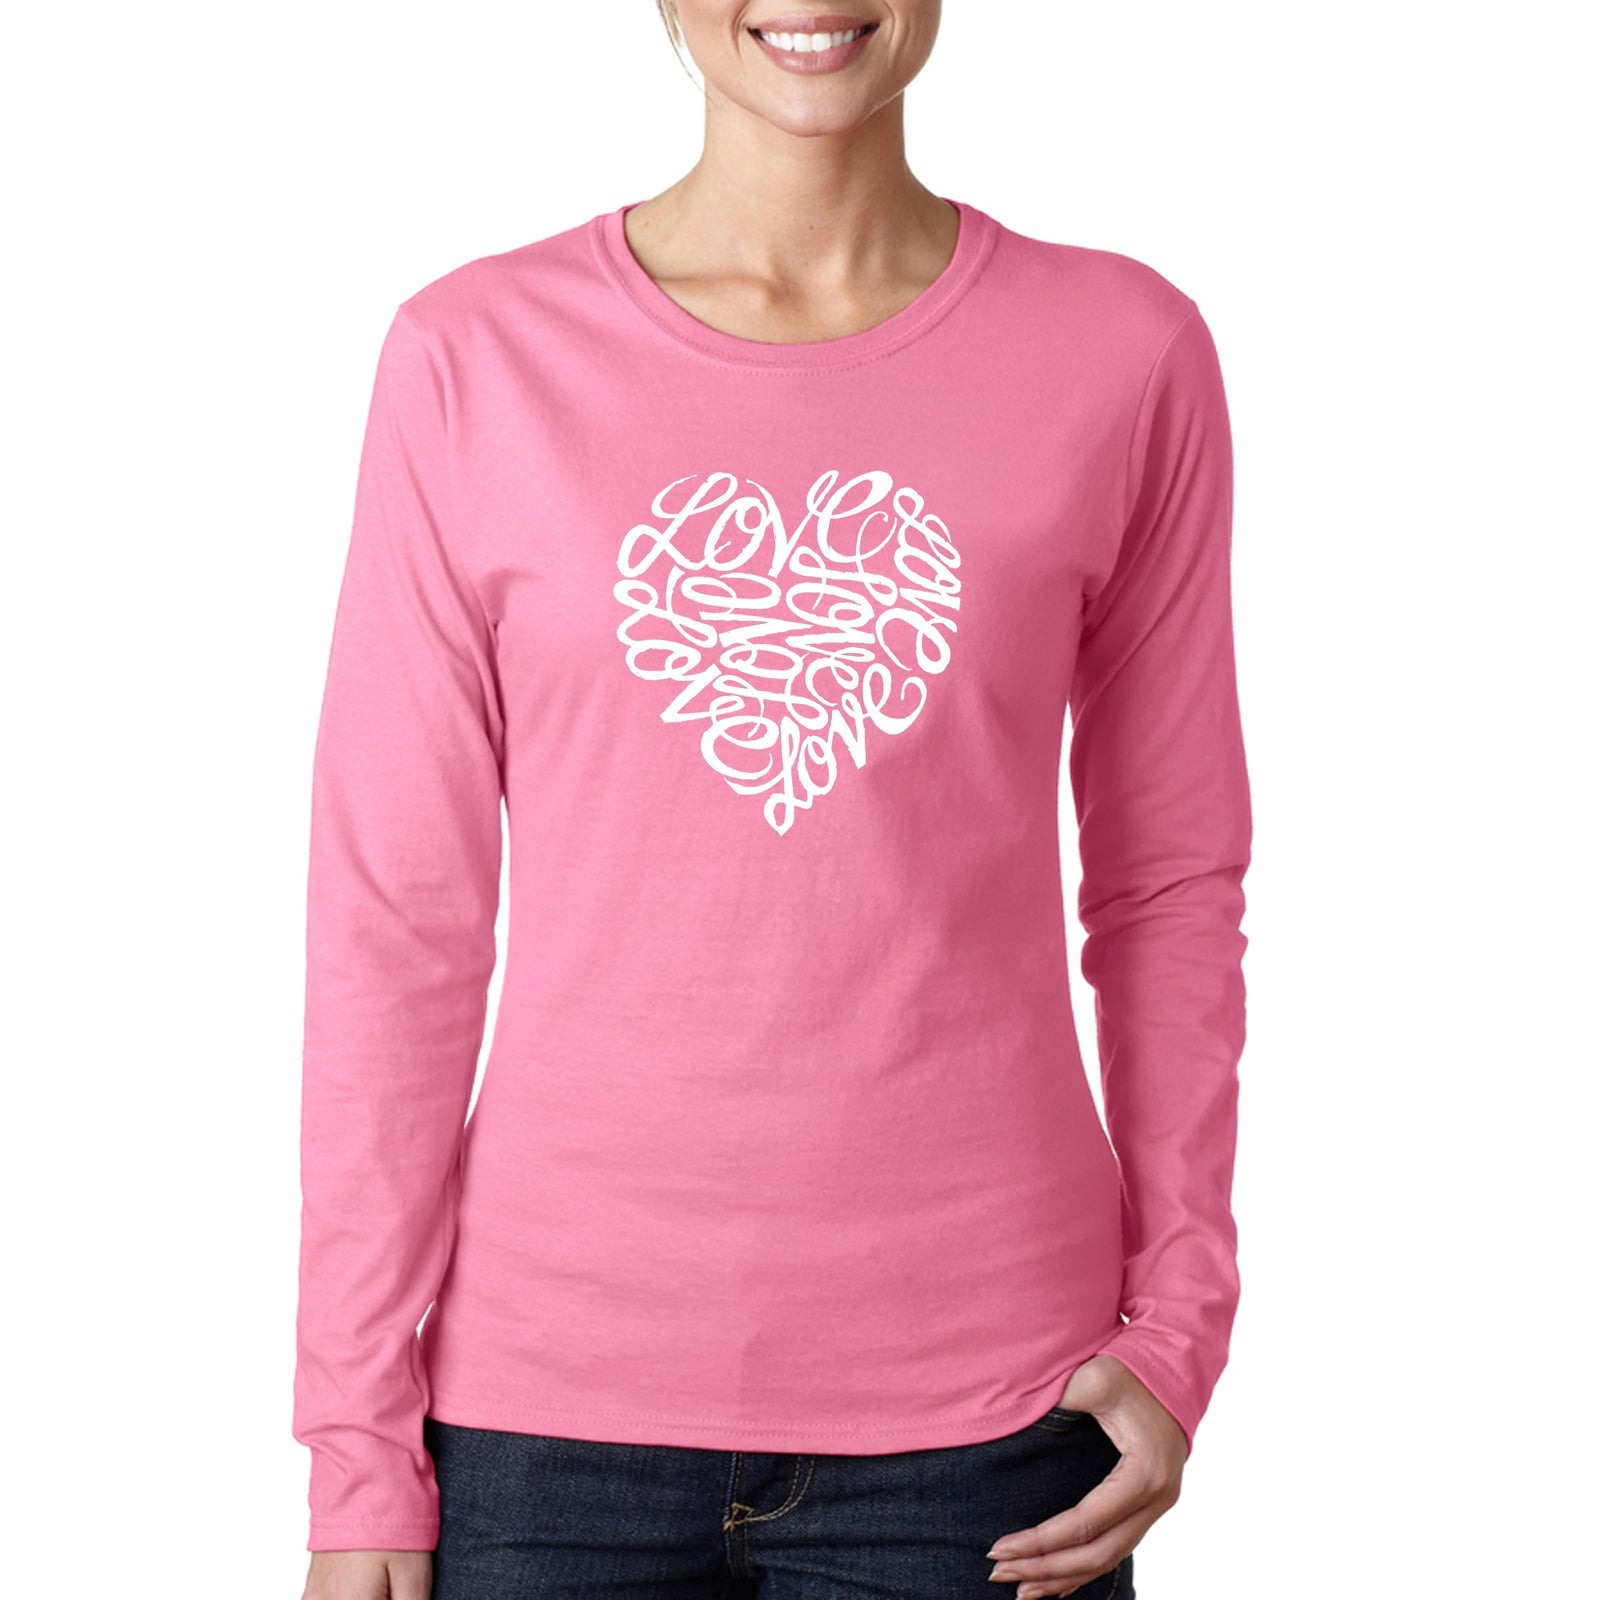 Women's Long Sleeve T-Shirt - LOVE